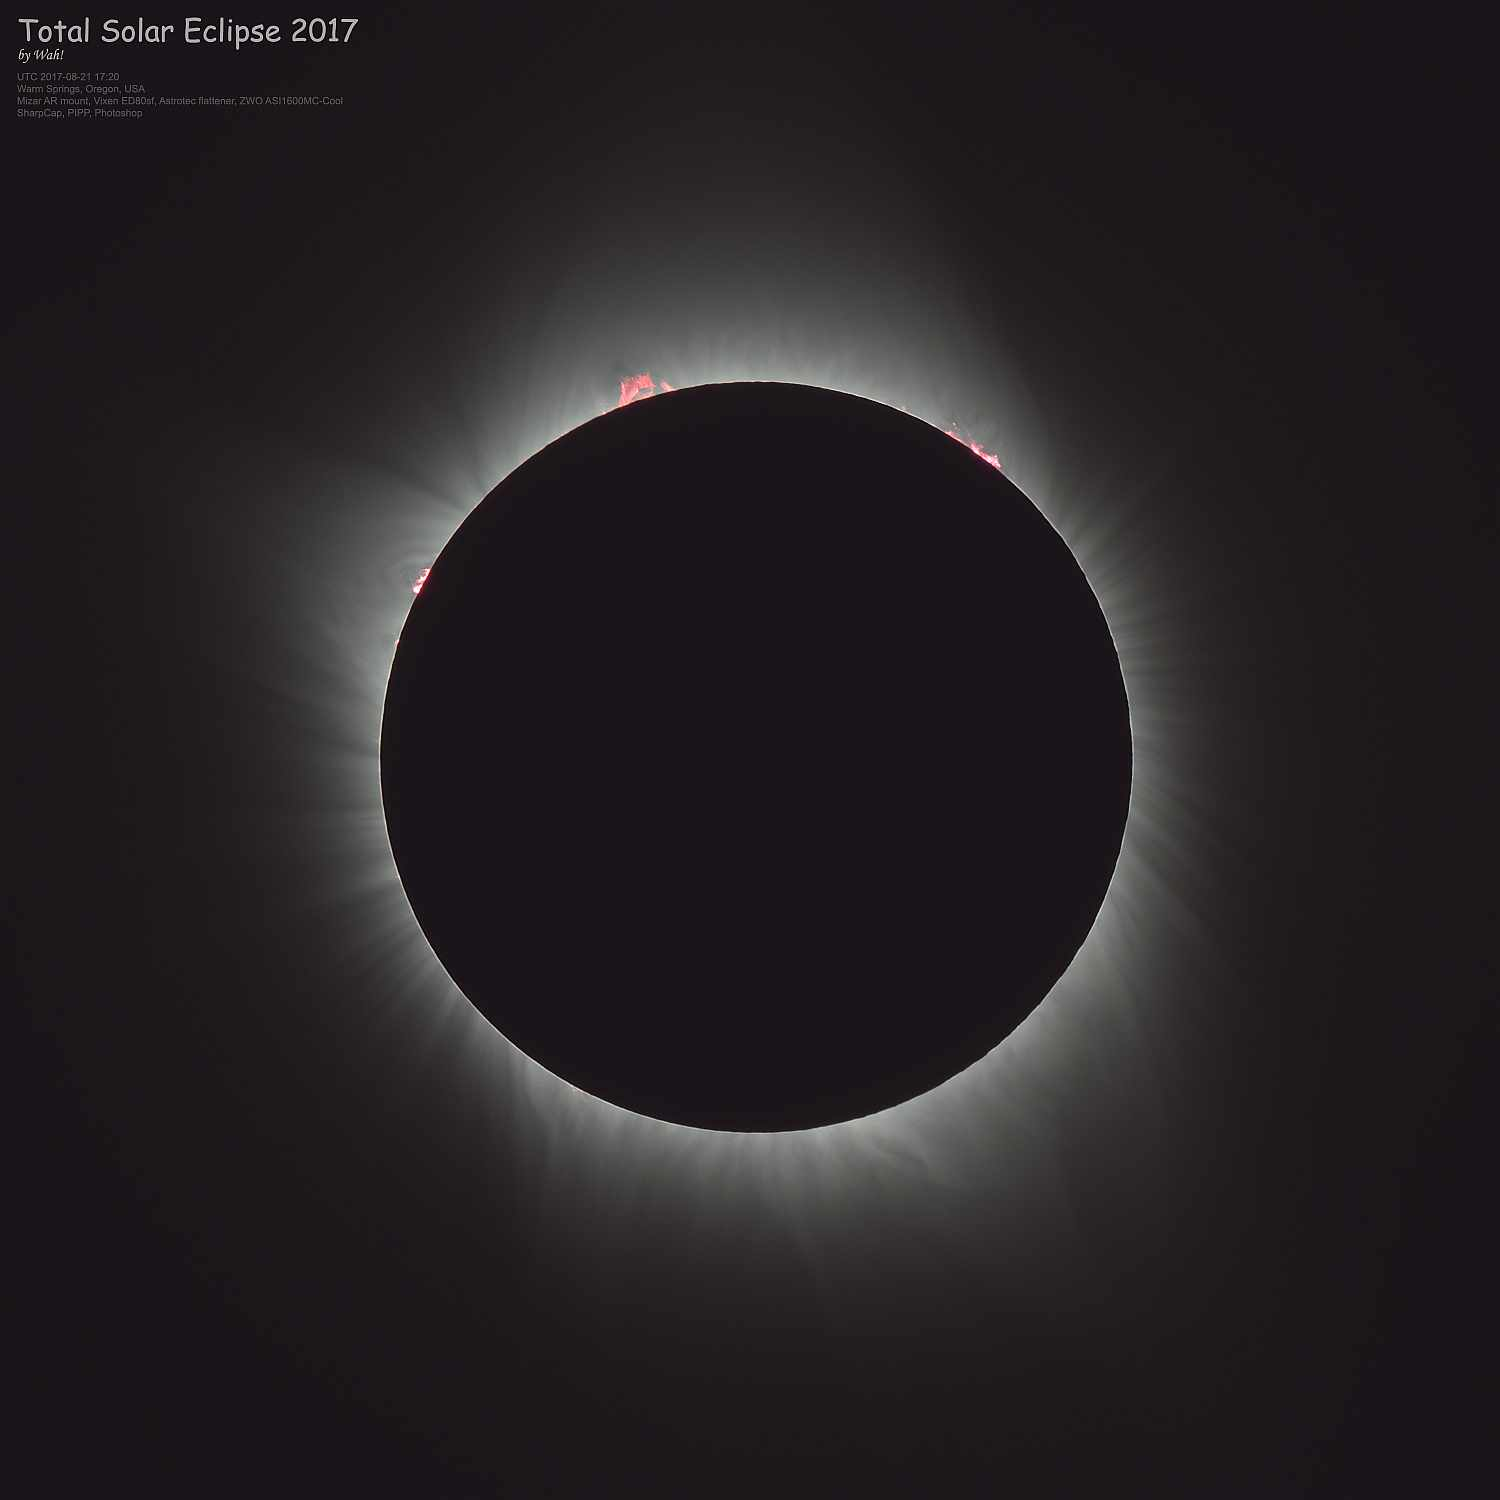 TotalSolarEclipse_ASI1600MC-Cool_20170821_Prominence2.jpg